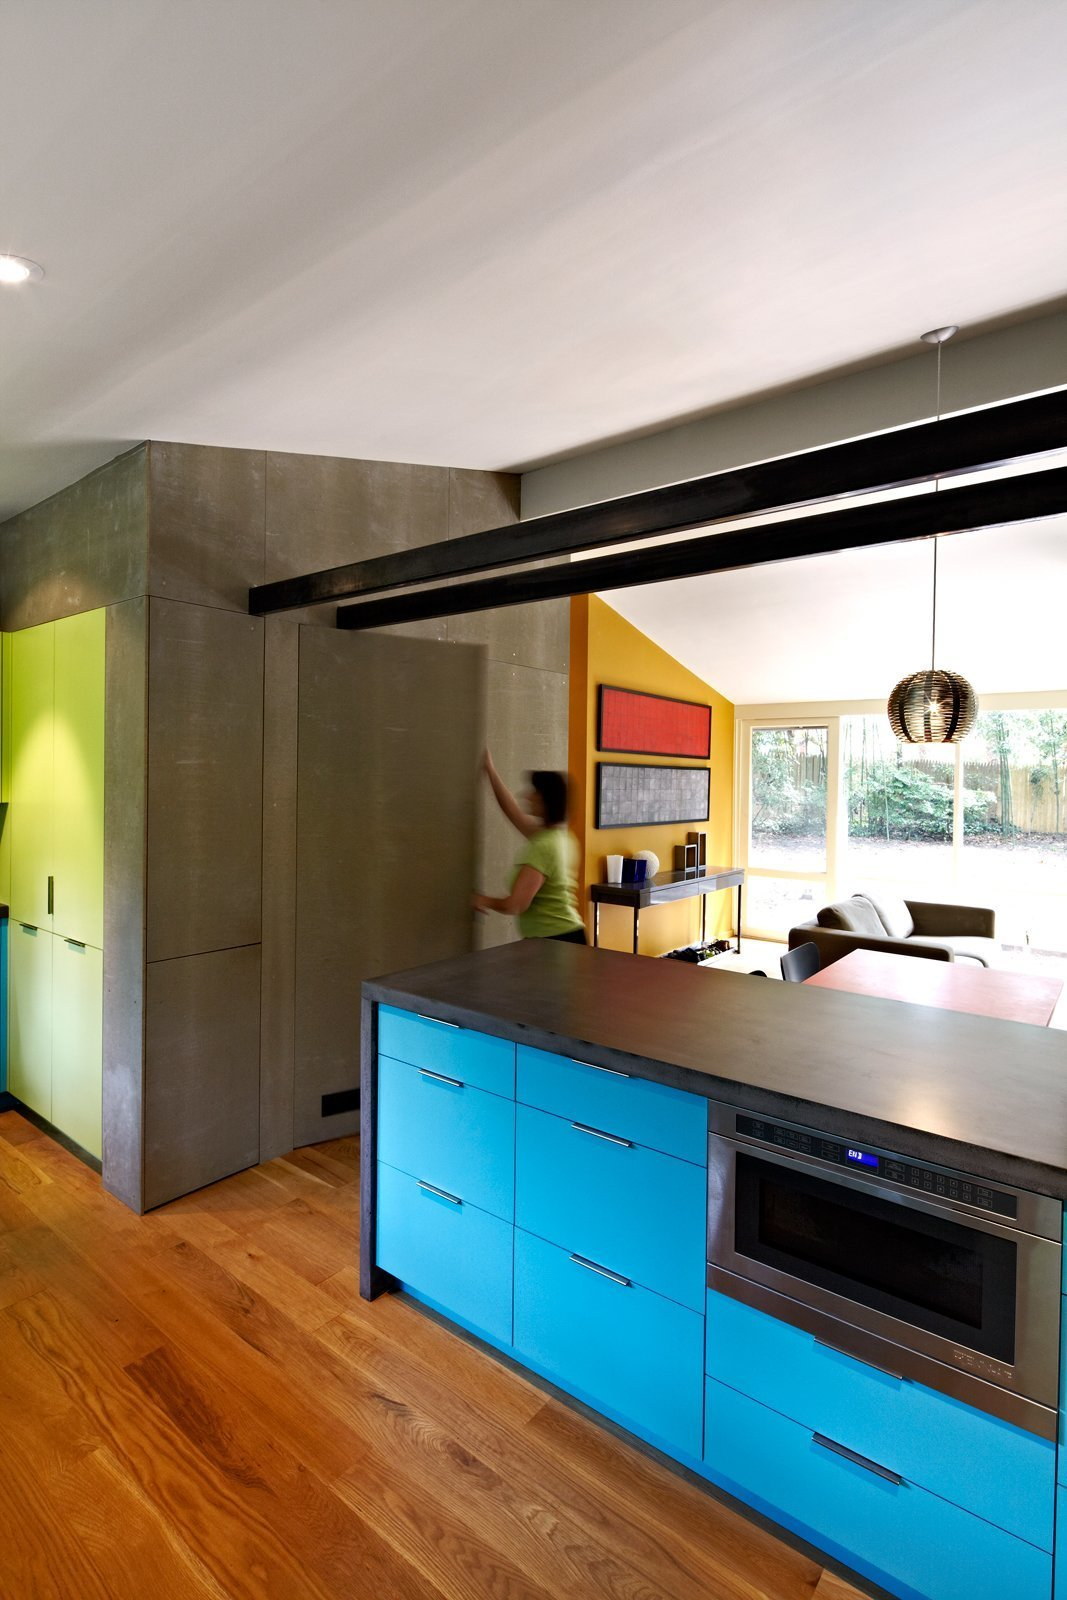 Kitchen, Recessed Lighting, Colorful Cabinet, Pendant Lighting, Wall Oven, and Medium Hardwood Floor Inspired by industrial midcentury style and industrial Pop art, architect Janet Bloomberg very bravely set candy-colored cabinets against particleboard walls to create a wonderfully dramatic kitchen.  Best Photos from 12 Electrifying Kitchens That Are Unapologetic About Color